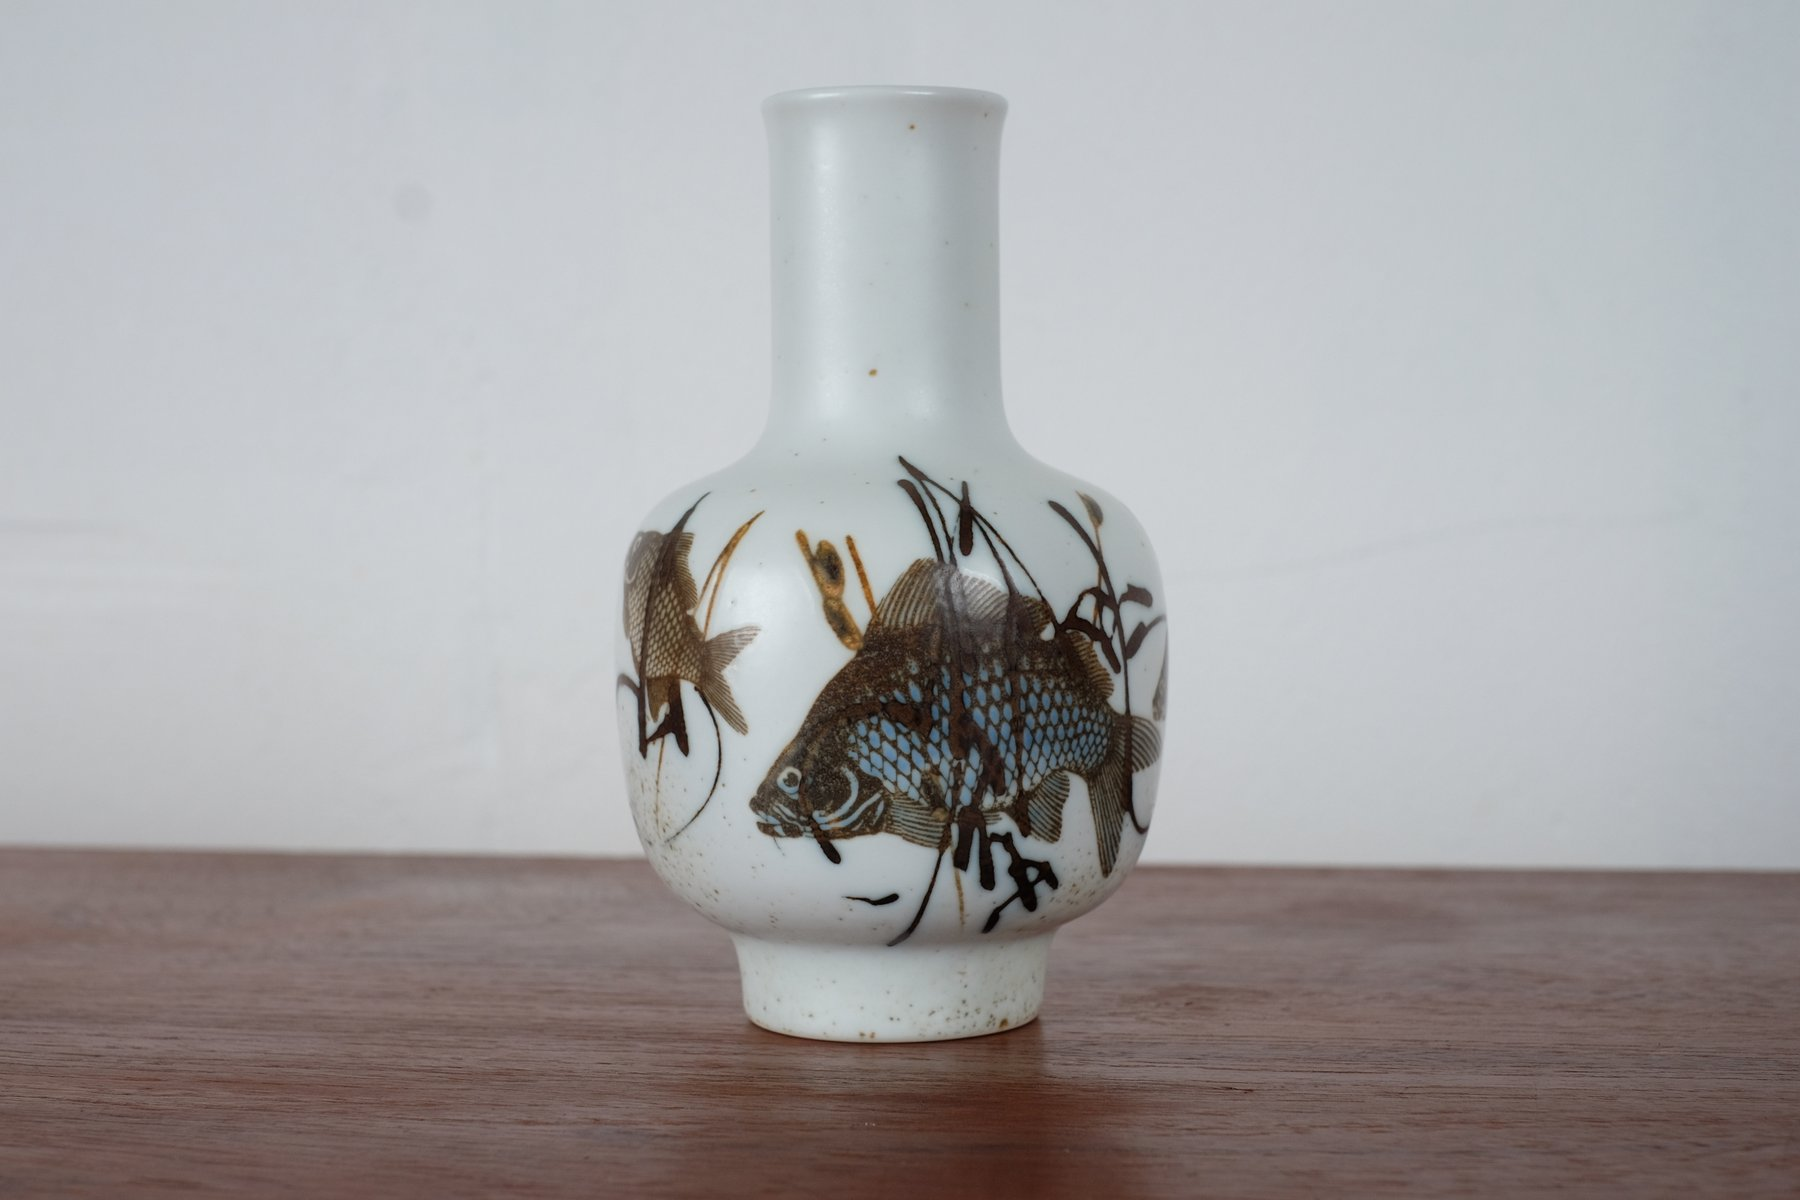 Fish vase by nils thorsson for royal copenhagen 1965 for sale at price per piece reviewsmspy